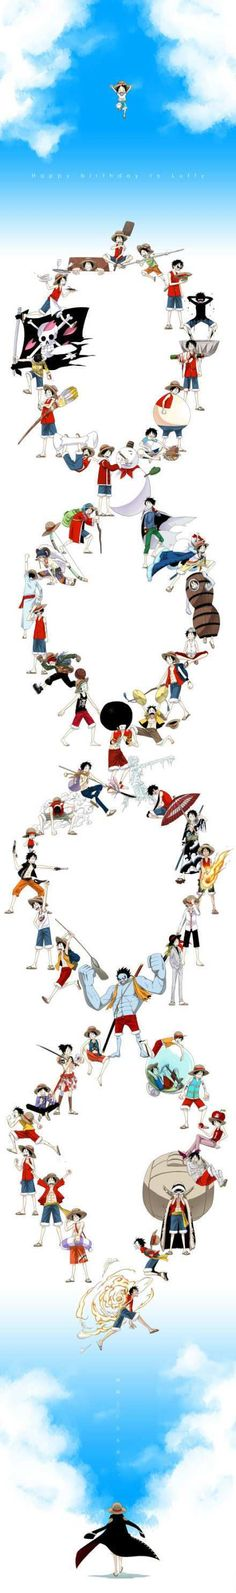 One piece __-_--- All the different Luffy's over the course of the show